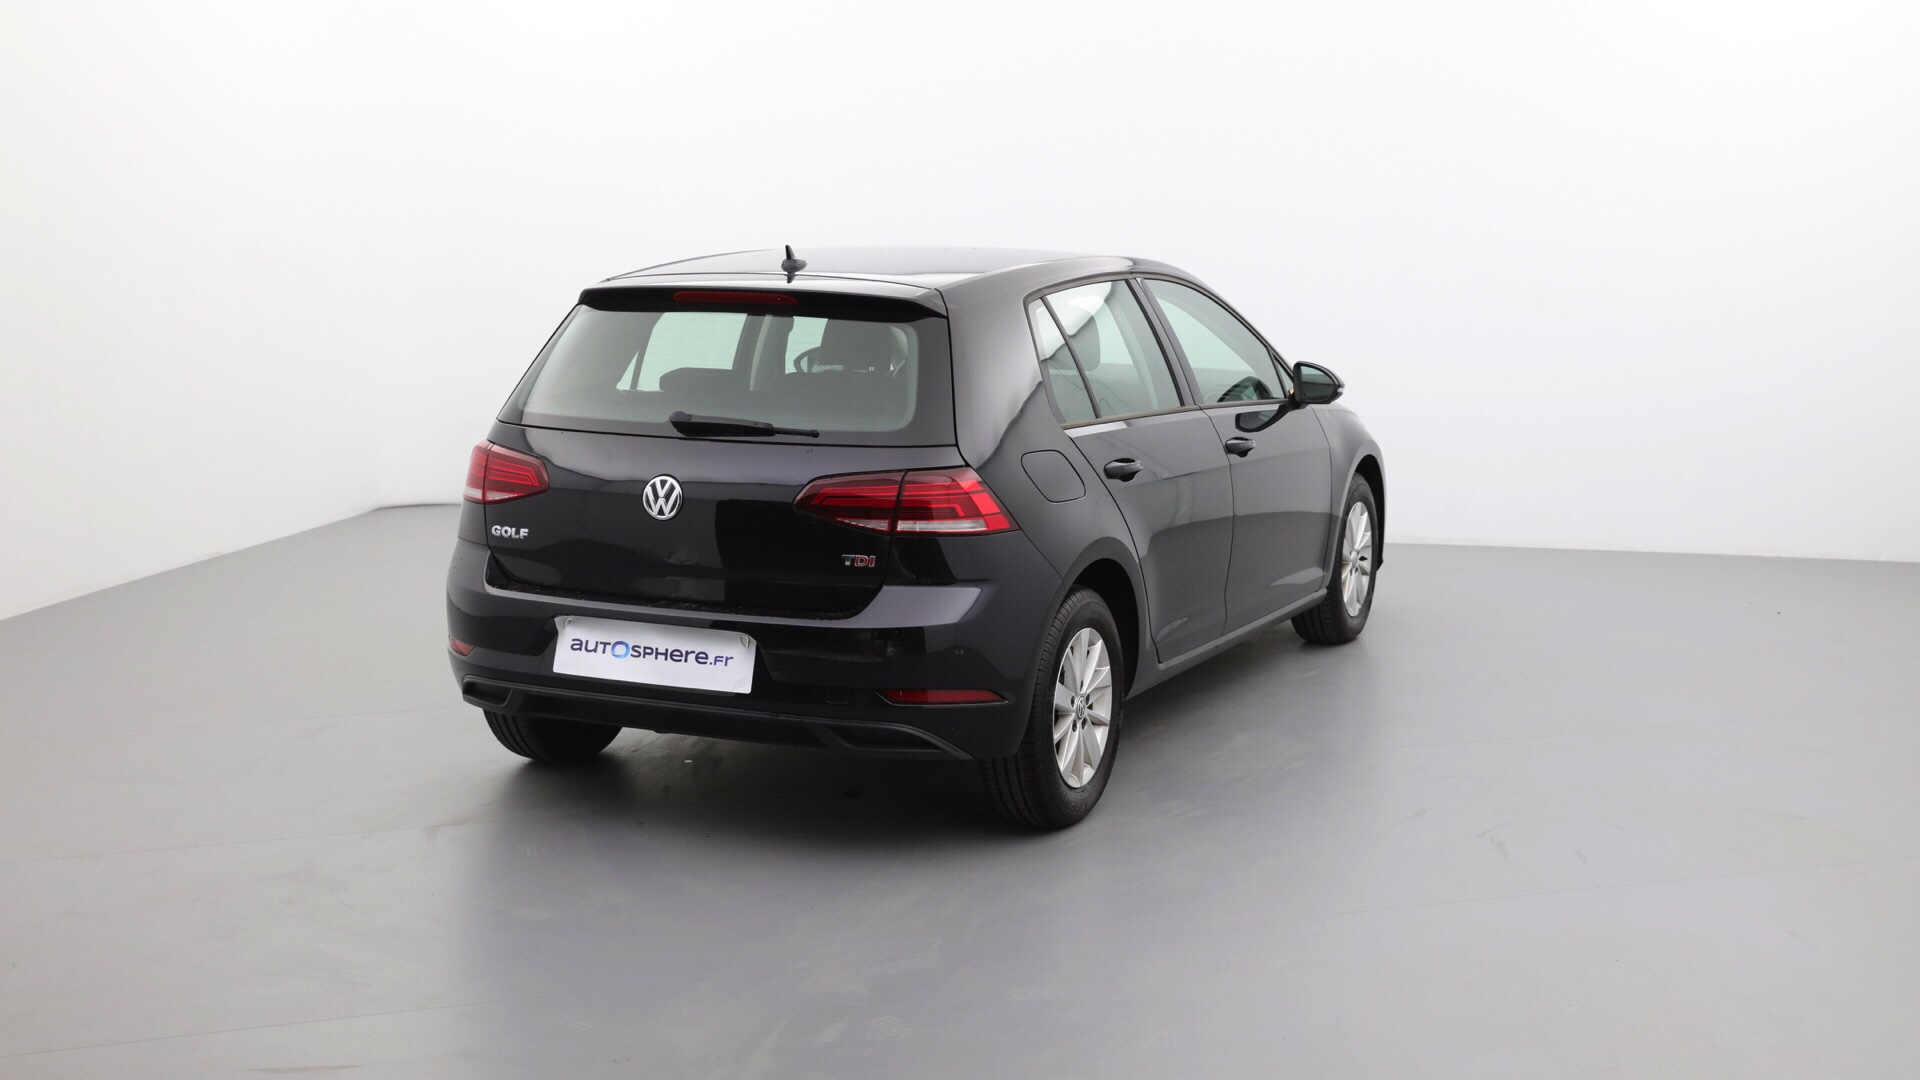 VOLKSWAGEN GOLF 1.6 TDI 115CH BLUEMOTION TECHNOLOGY FAP TRENDLINE BUSINESS 5P - Miniature 5